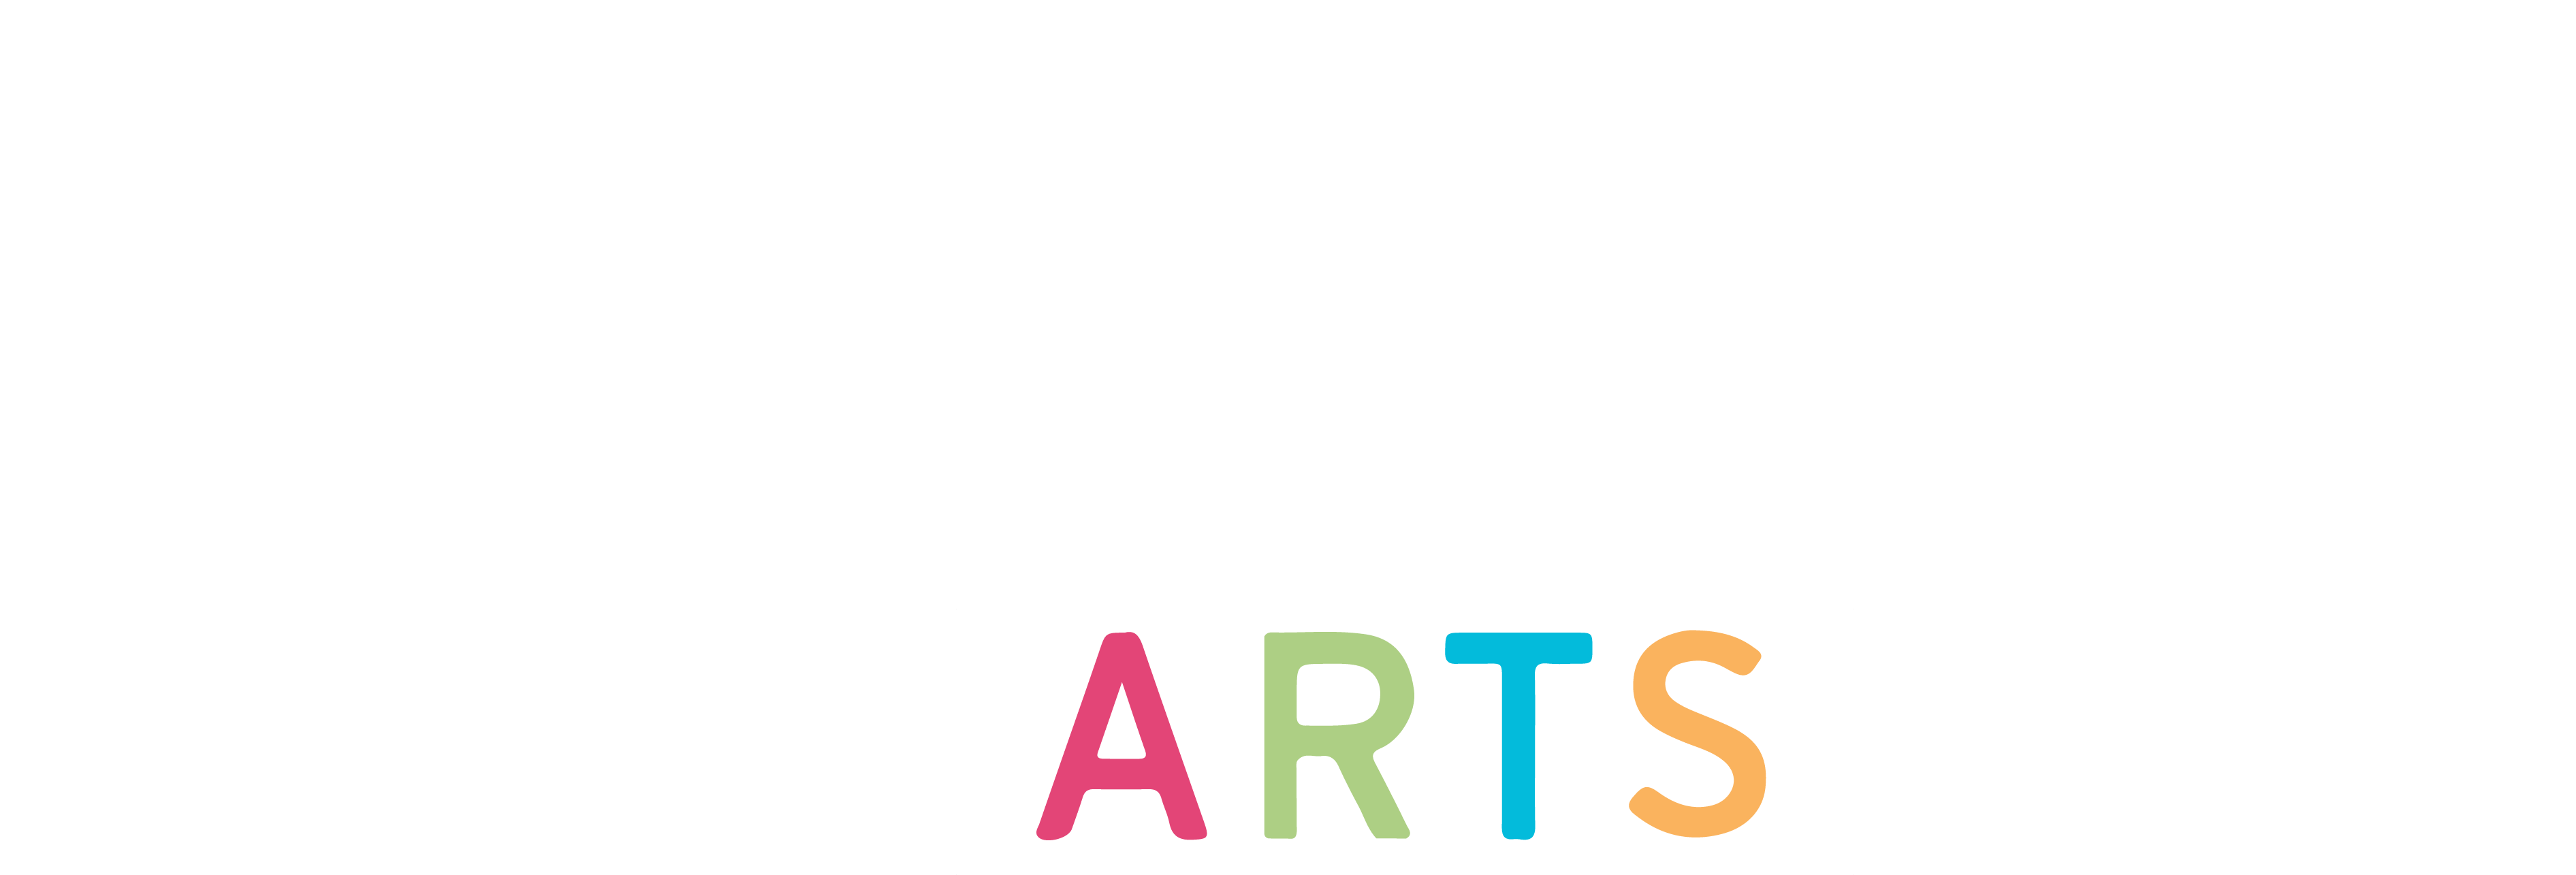 Art Schools In Chicago >> Department Of Arts Education Chicago Public Schools